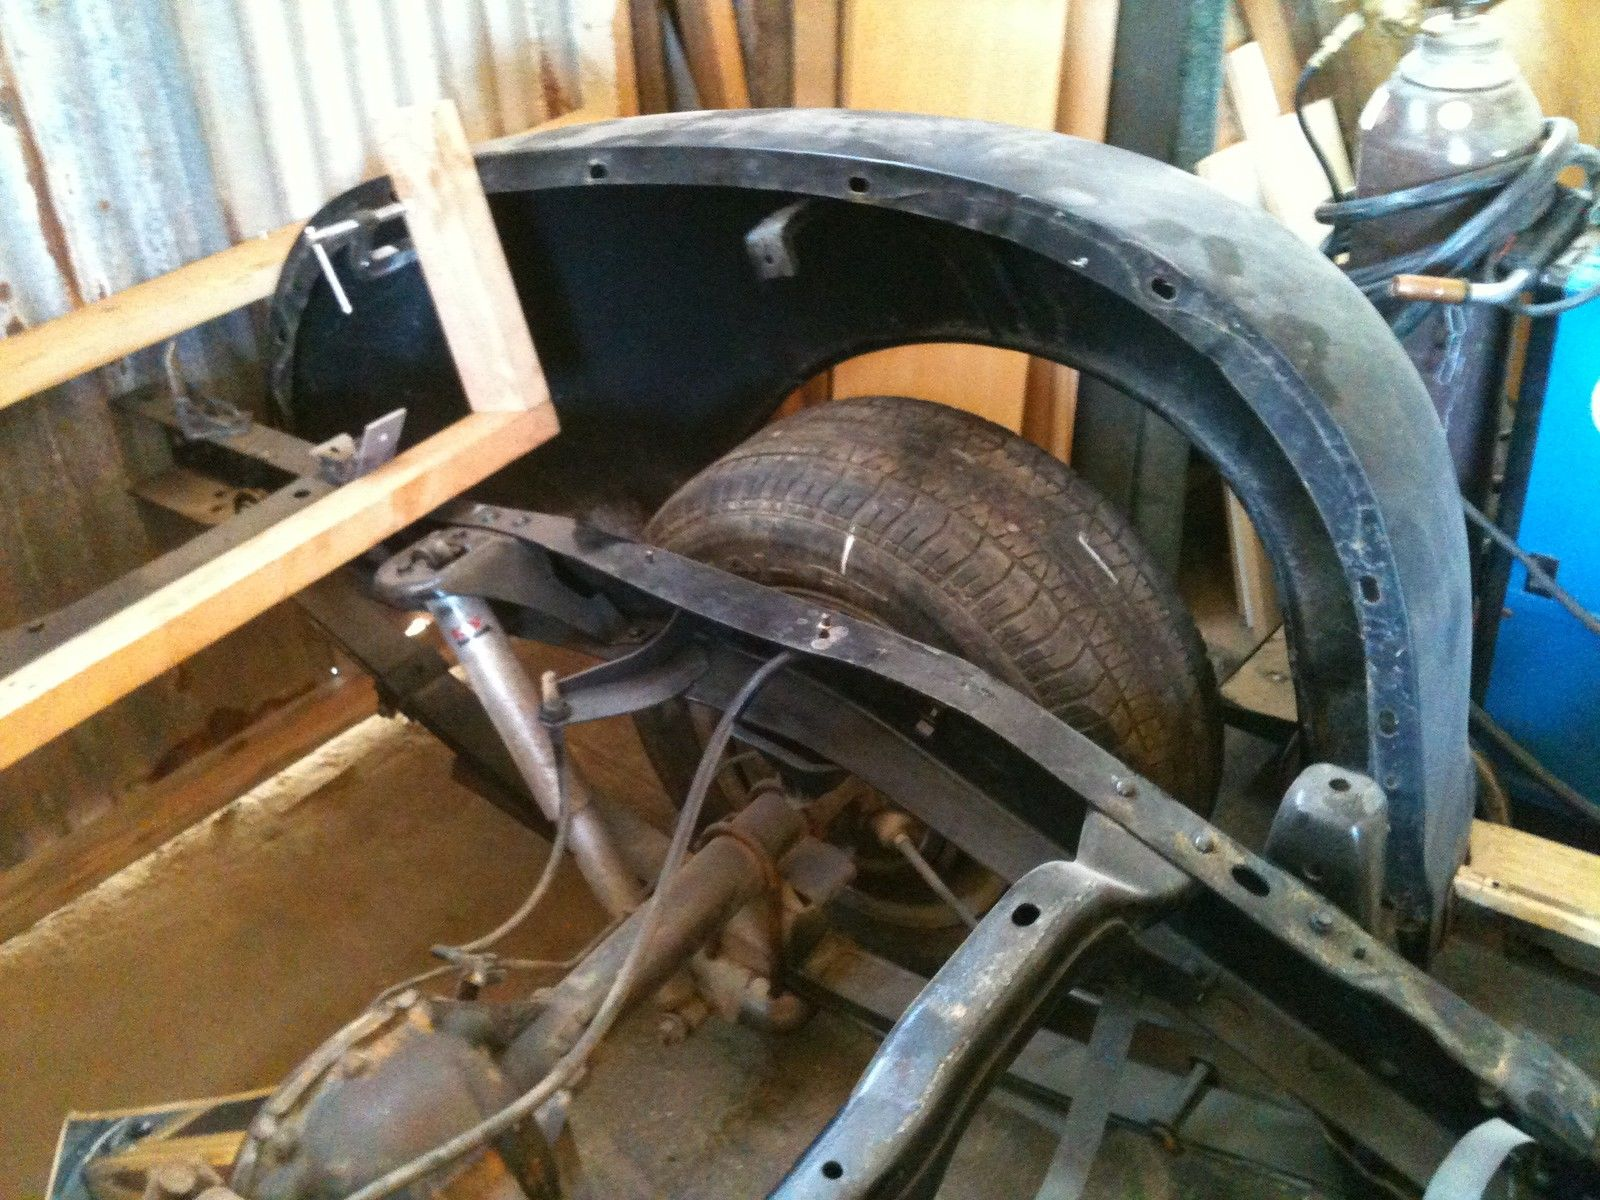 1951 Chevrolet Truck WOODY project on S10 frame 1947 1948 ...